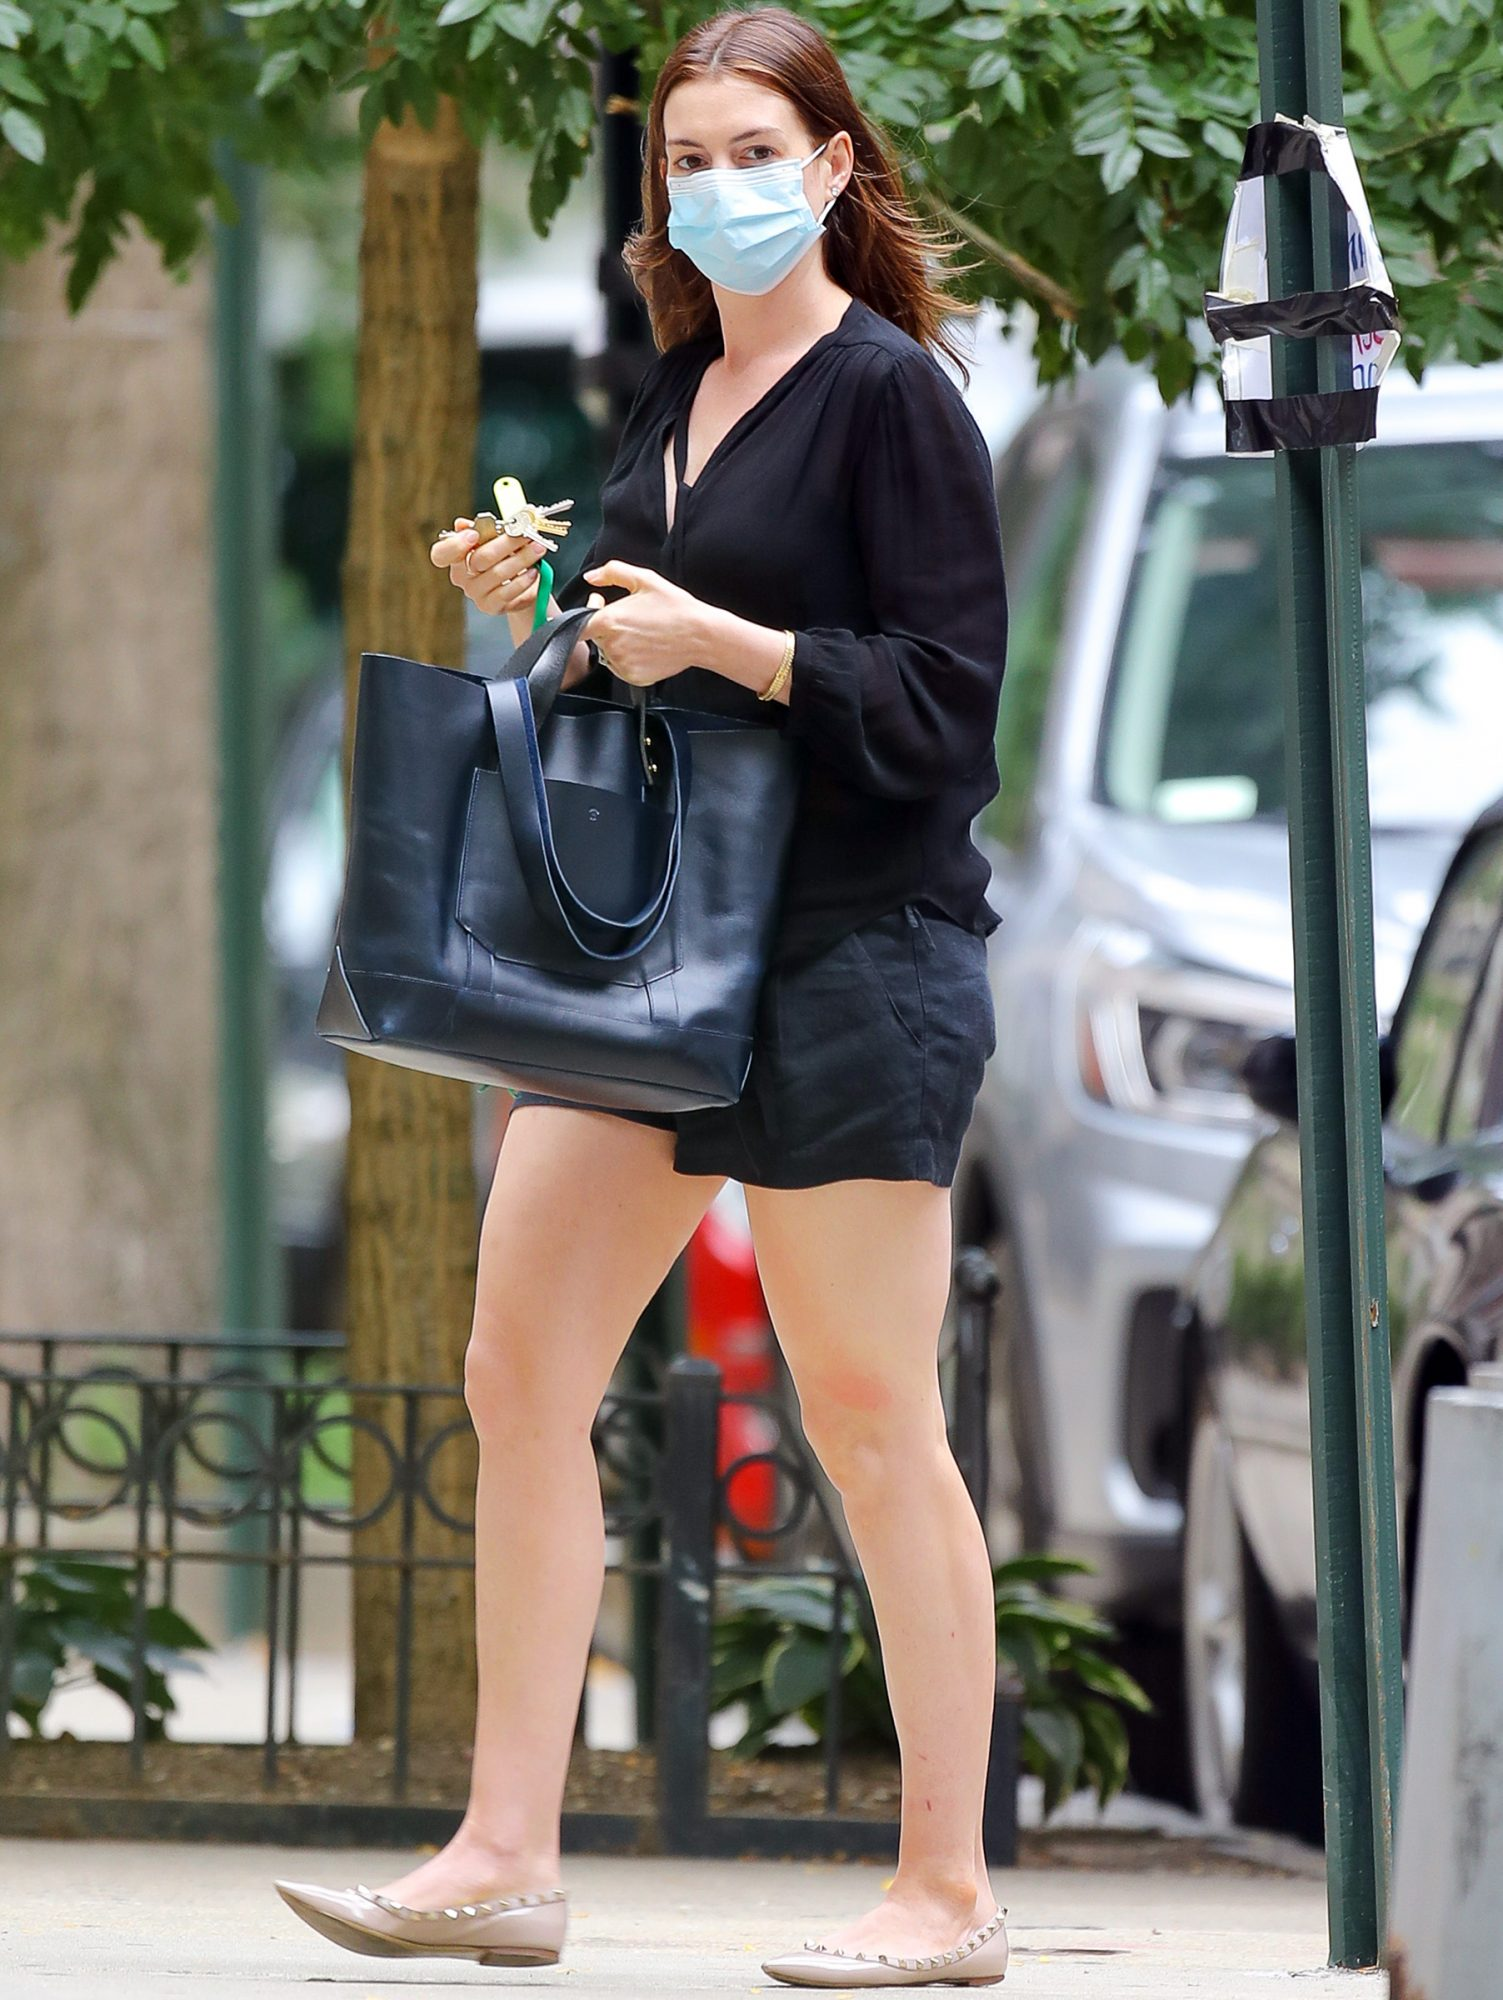 Anne Hathaway was spotted out and about in NYC